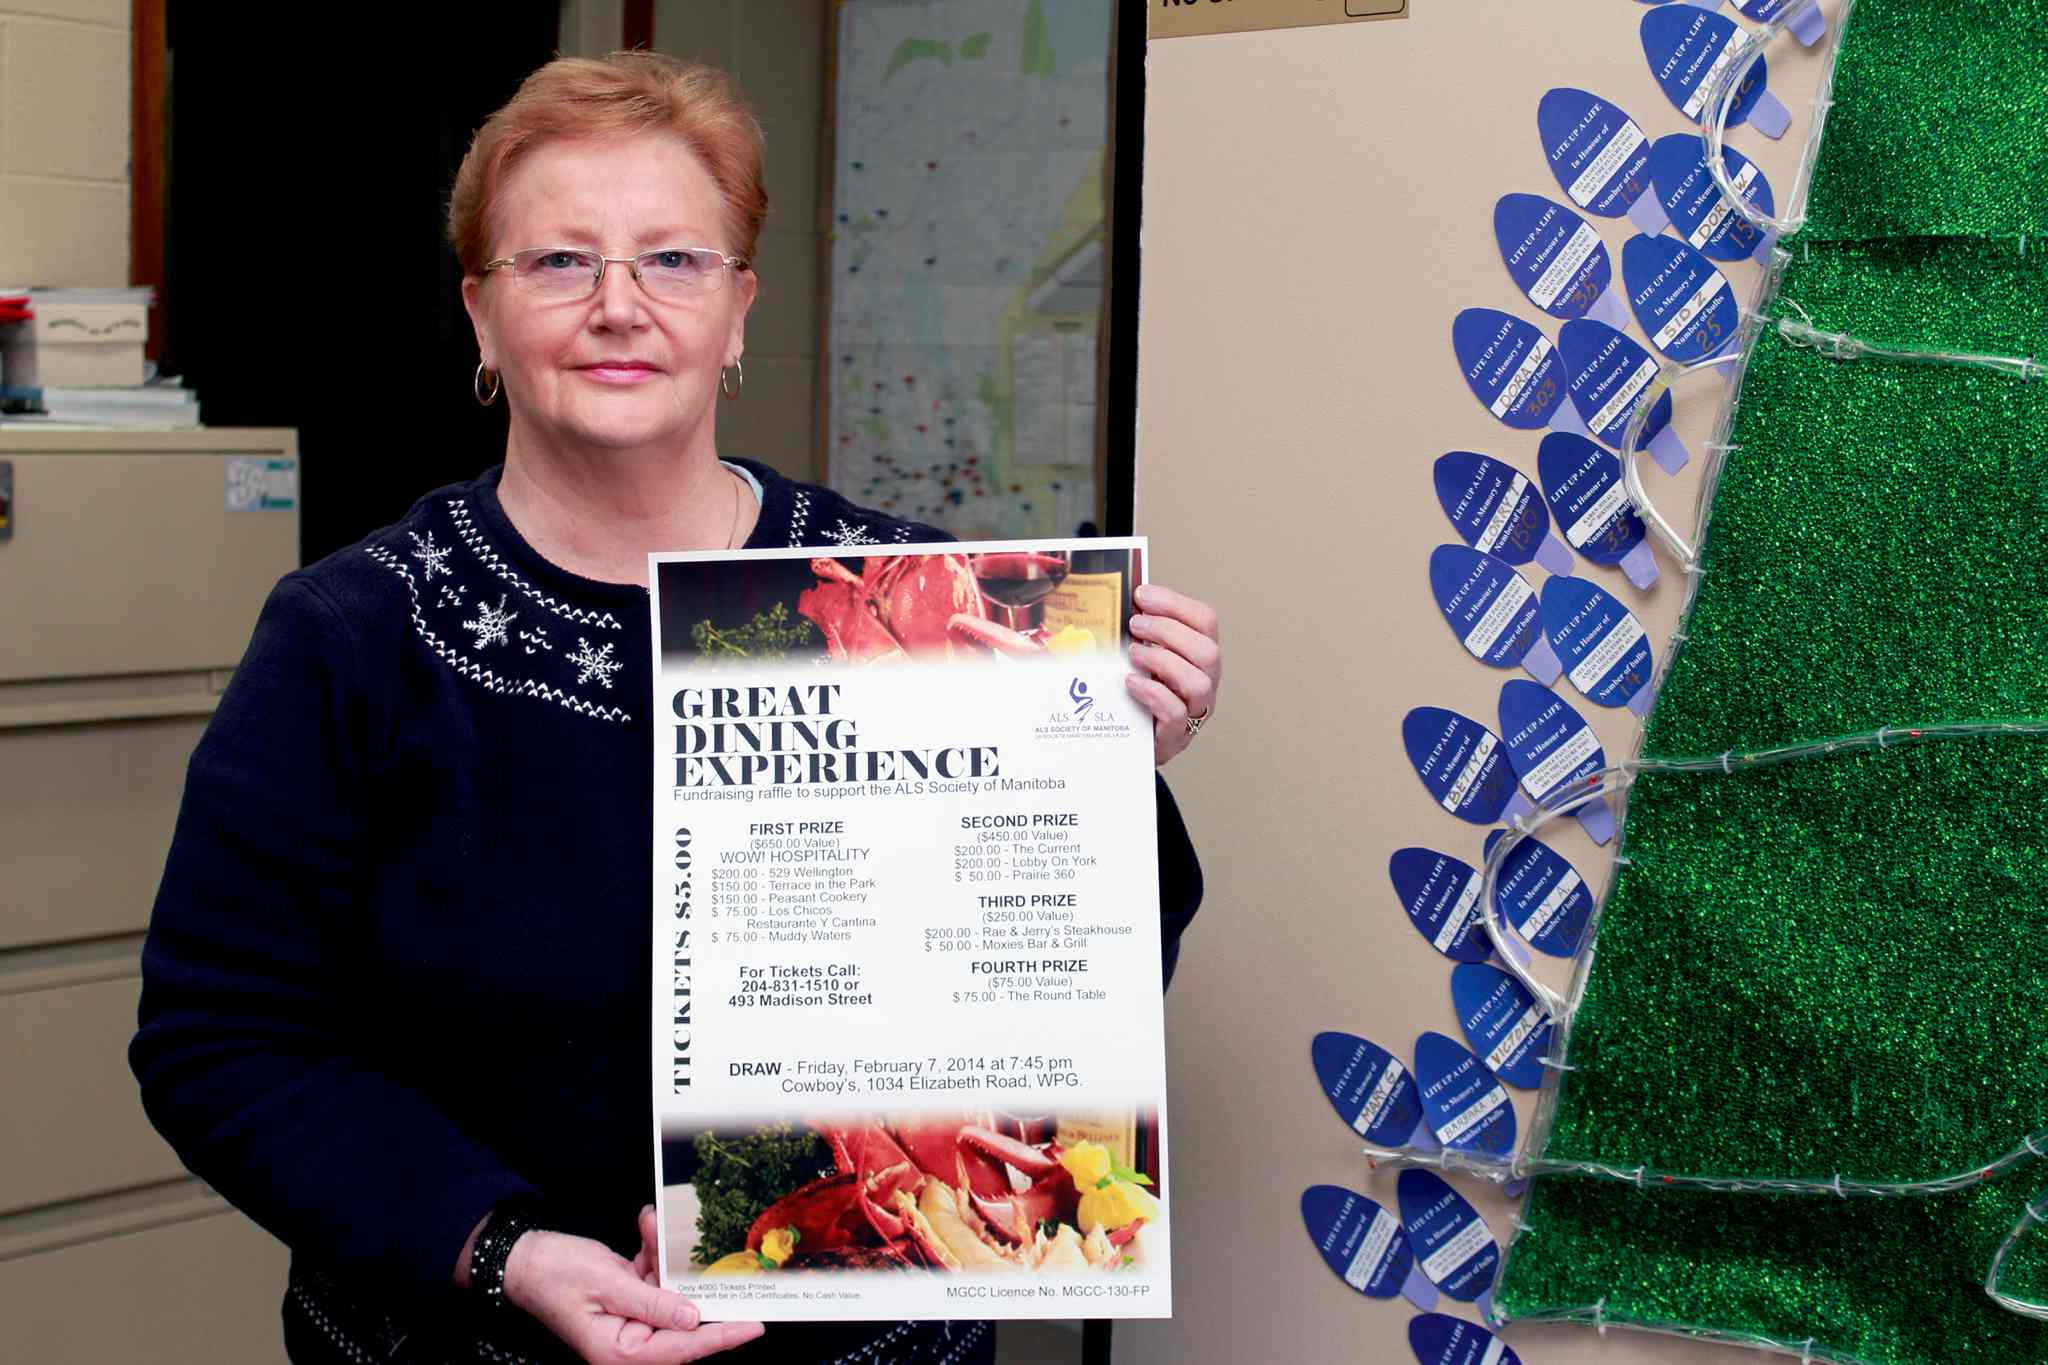 ALS Society of Manitoba executive director Diana Rasmussen holds up a poster with details about the Great Dining Experience. Tickets can be bought at the society's head office at 493 Madison Ave., St. Vital Shopping Centre, and Garden City Shopping Centre.